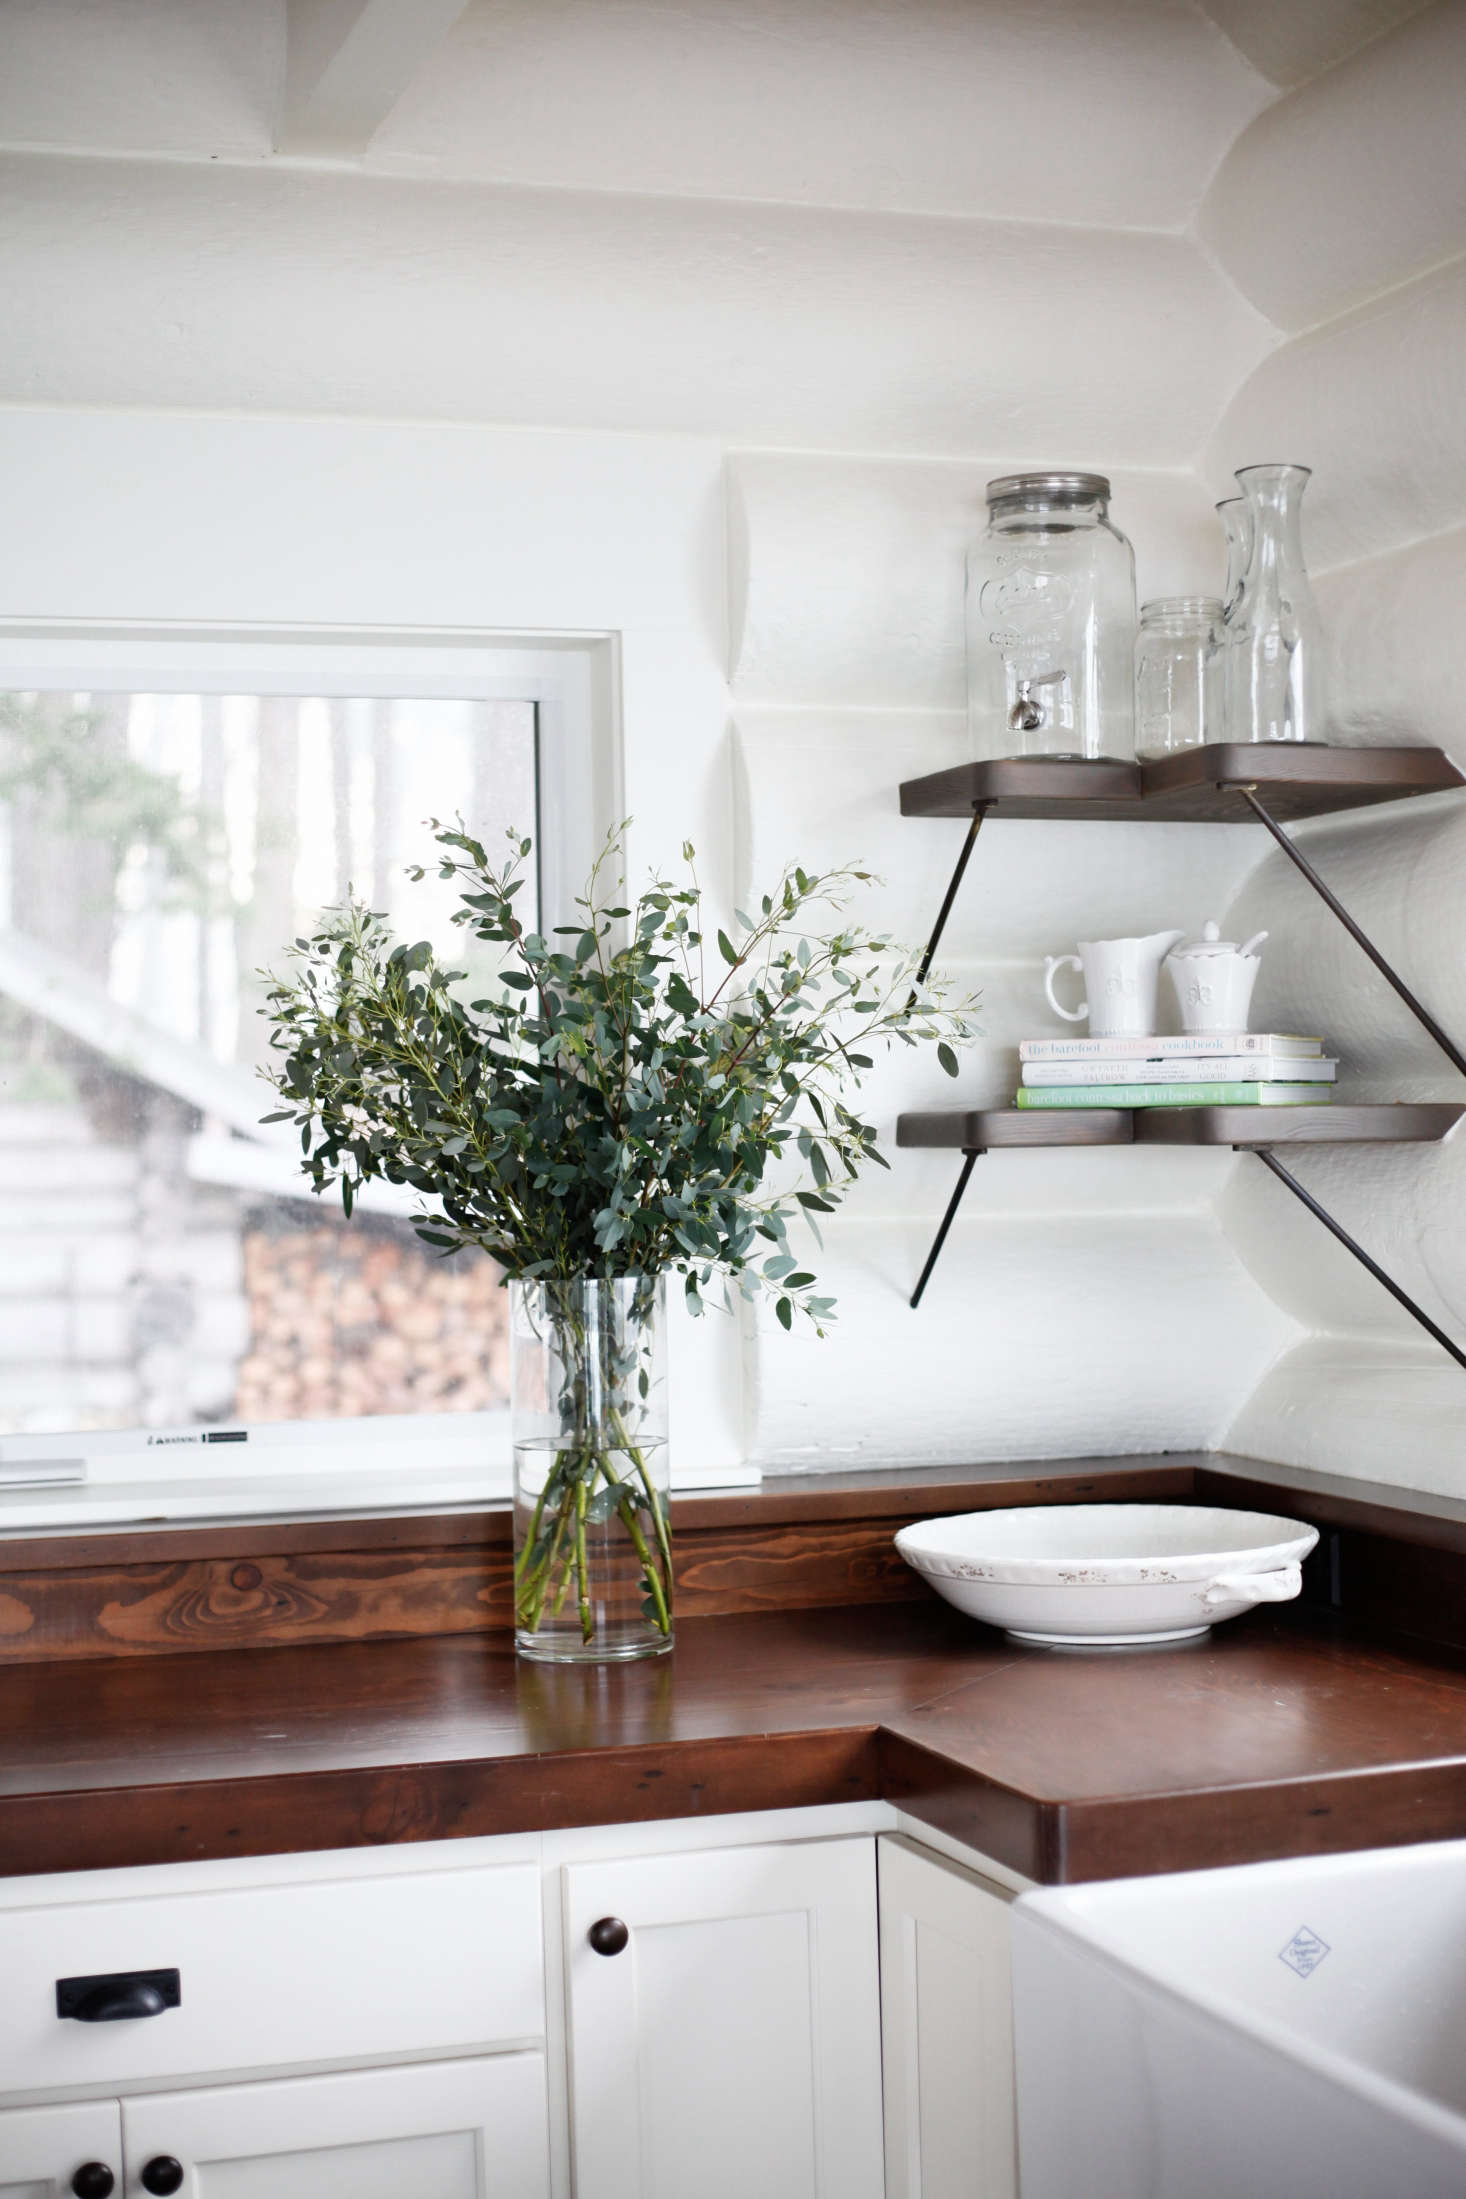 Kitchen Shelves Instead Of Cabinets Classic New Whitewashed Cabin Kitchen San Juan Islands